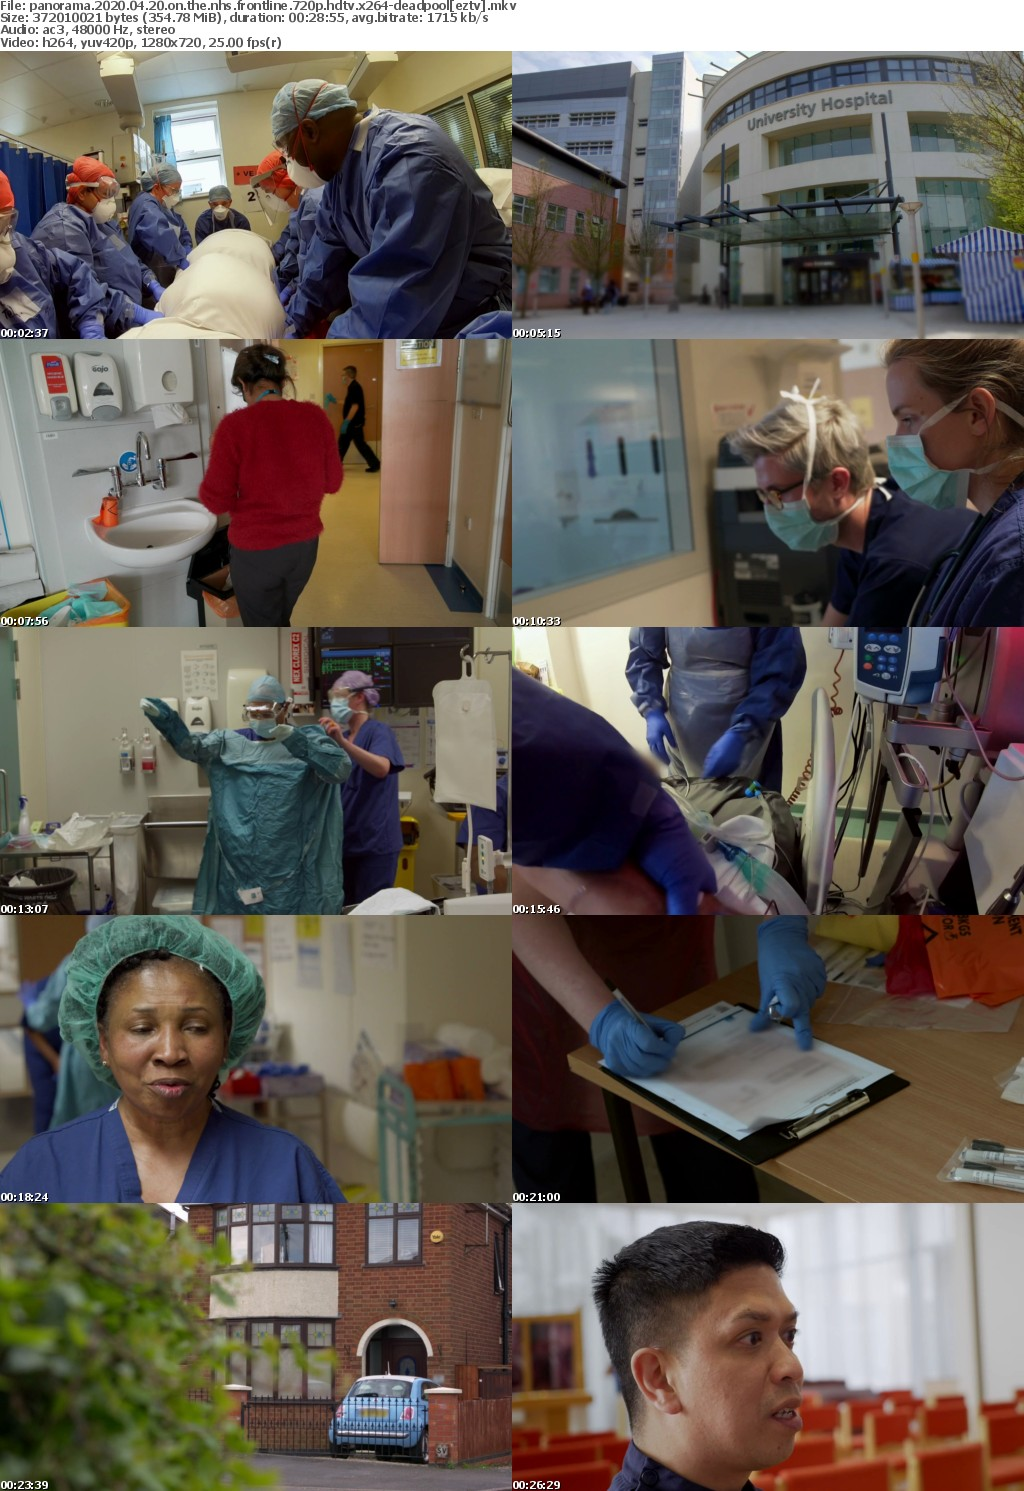 Panorama 2020 04 20 On The NHS Frontline 720p HDTV X264-DEADPOOL